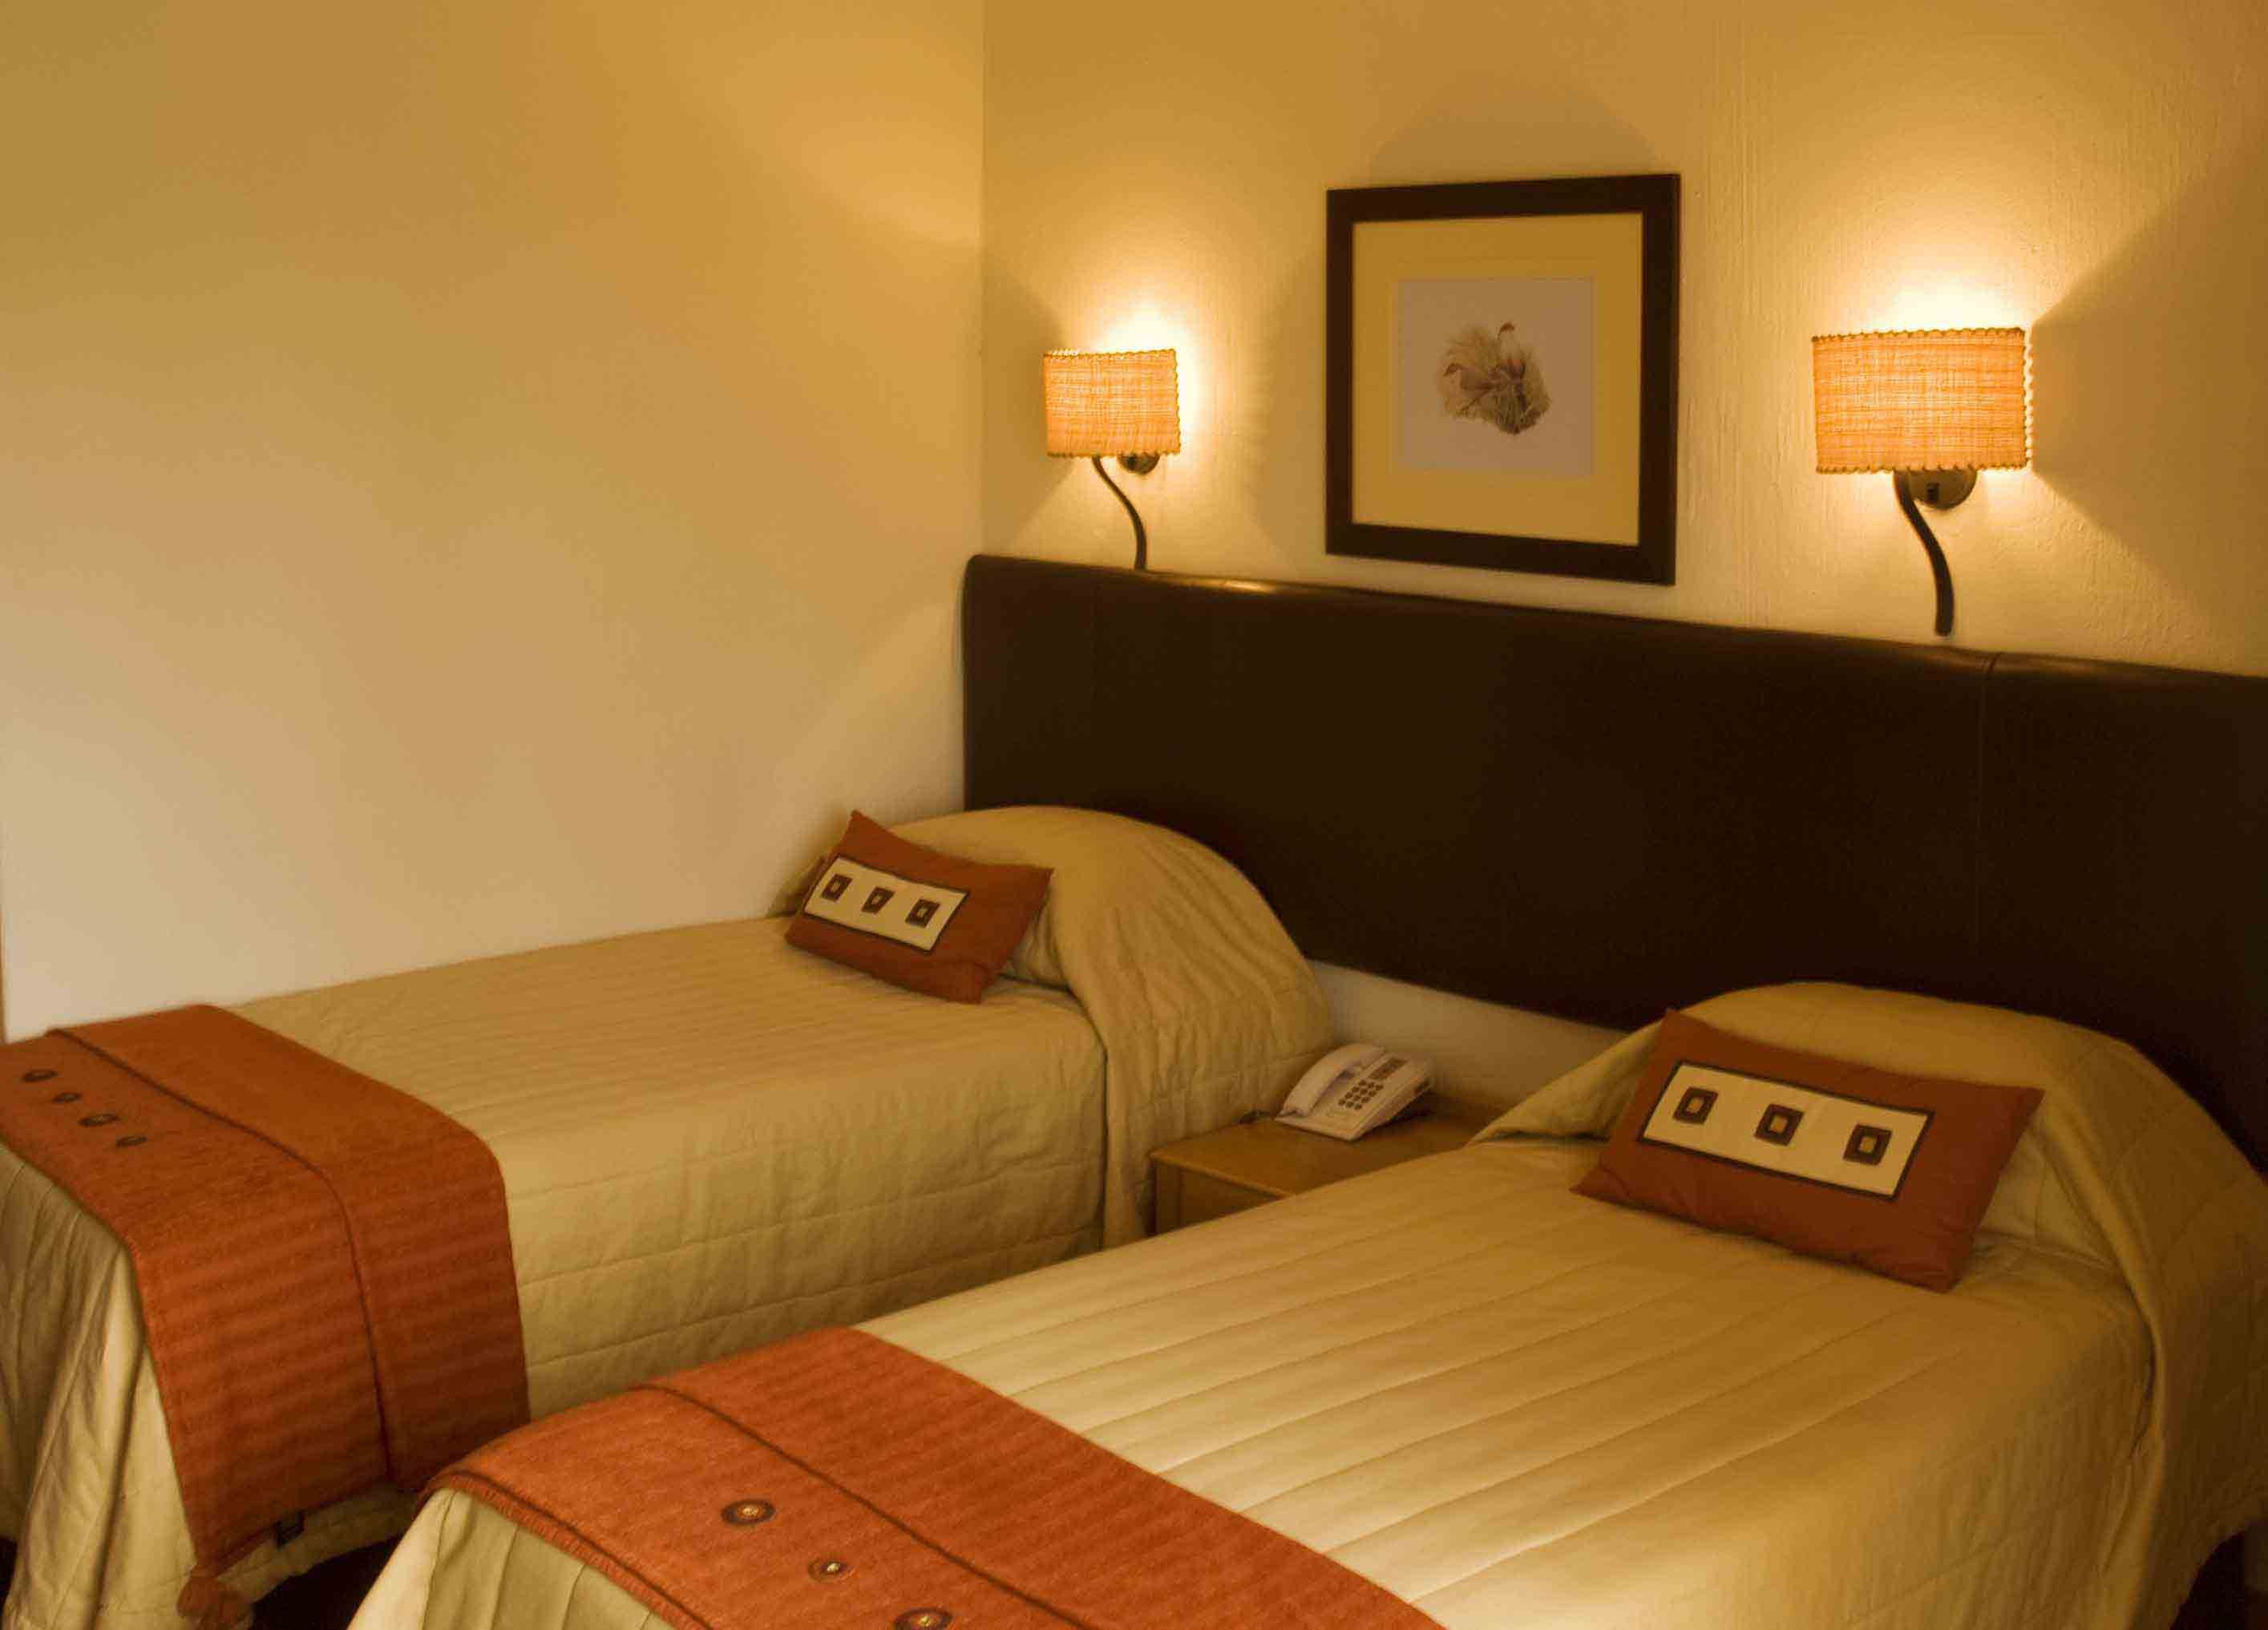 Offering space and comfort the standard hotel room at